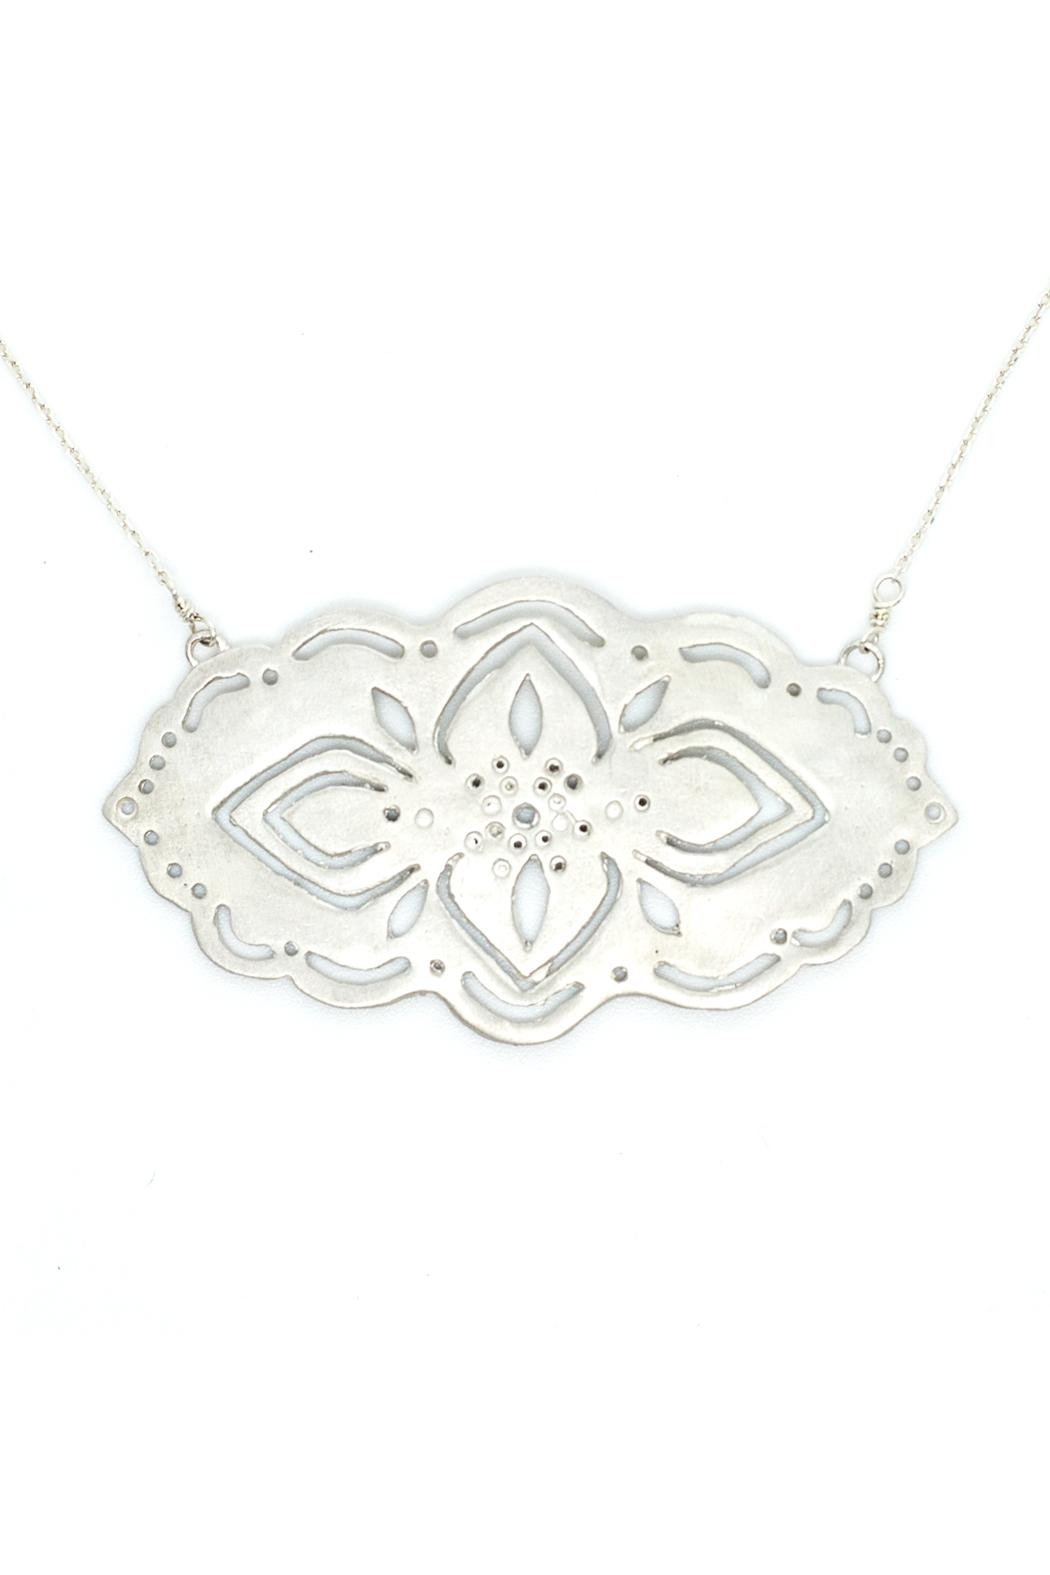 Kate Sydney Jewelry Silver Filigree Necklace - Main Image